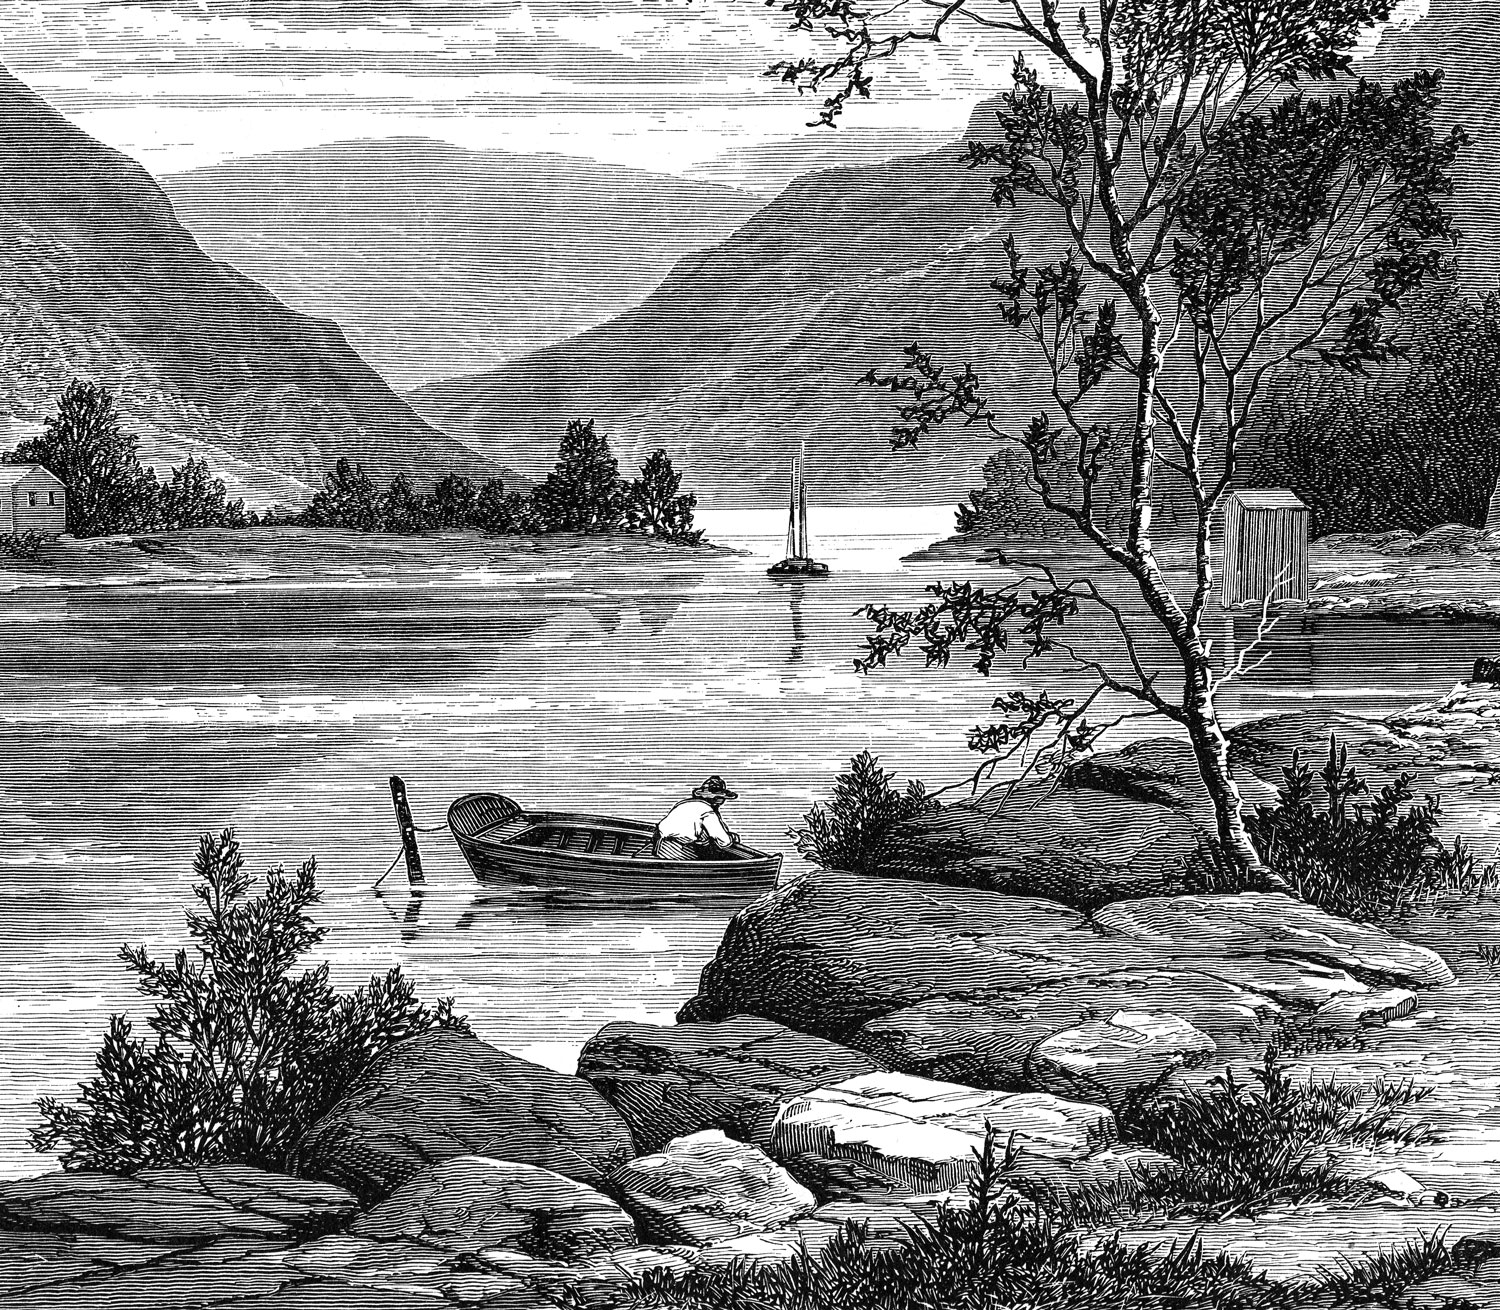 """RAMAPO RIVER   Taken from the book,  Picturesque Views of America  (1873), this engraving shows a view of the Ramapo River near the New York-New Jersey border. This area has a rich history and is where Revolutionary War patriots smuggled munitions from the Highland forges down the mountain range on top-secret trails called """"cannonball runs."""" Those familiar with the area may recognize how similar the landscape looks today — a verdant jewel on Bergen County's western border.  Look for the Ramapo on pendants, ornaments, and plates (more coming soon!)."""